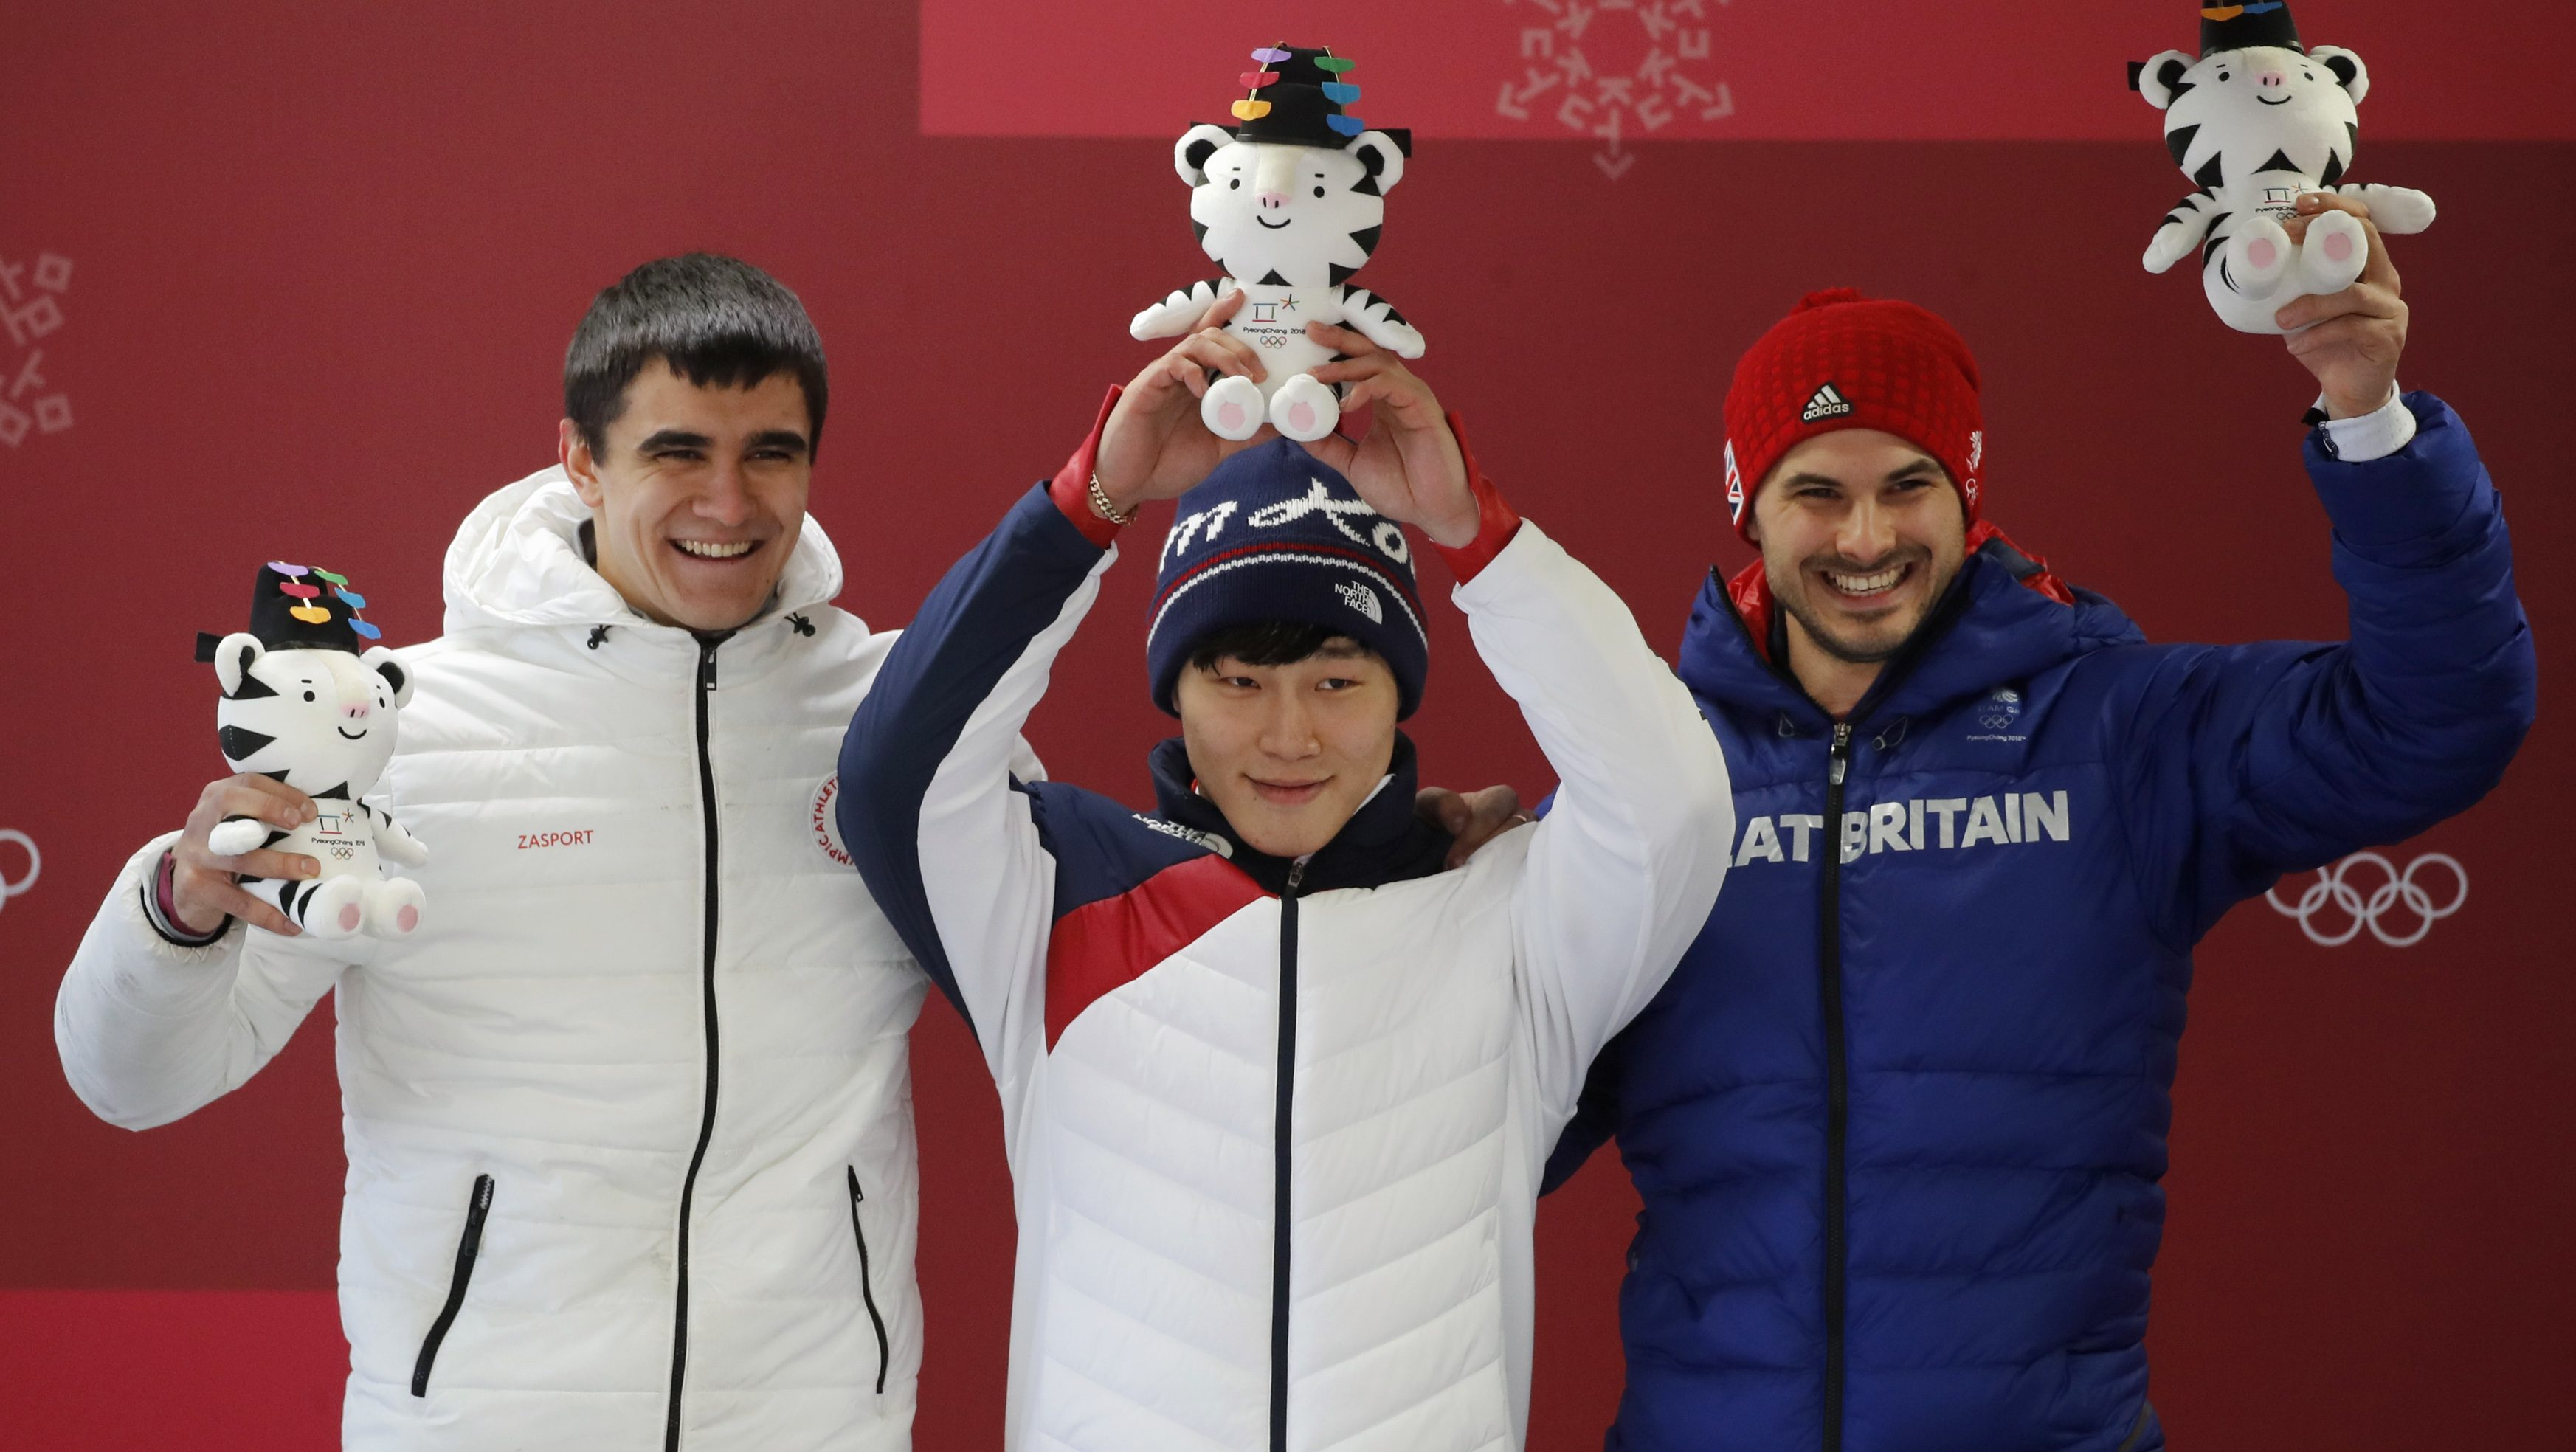 At the Pyeongchang 2018 Winter Olympics, men's skeleton gold medallist Yun Sung-bin of South Korea, silver medallist Nikita Tregubov, and bronze medallist Dom Parsons of Britain pose at the victory ceremony.